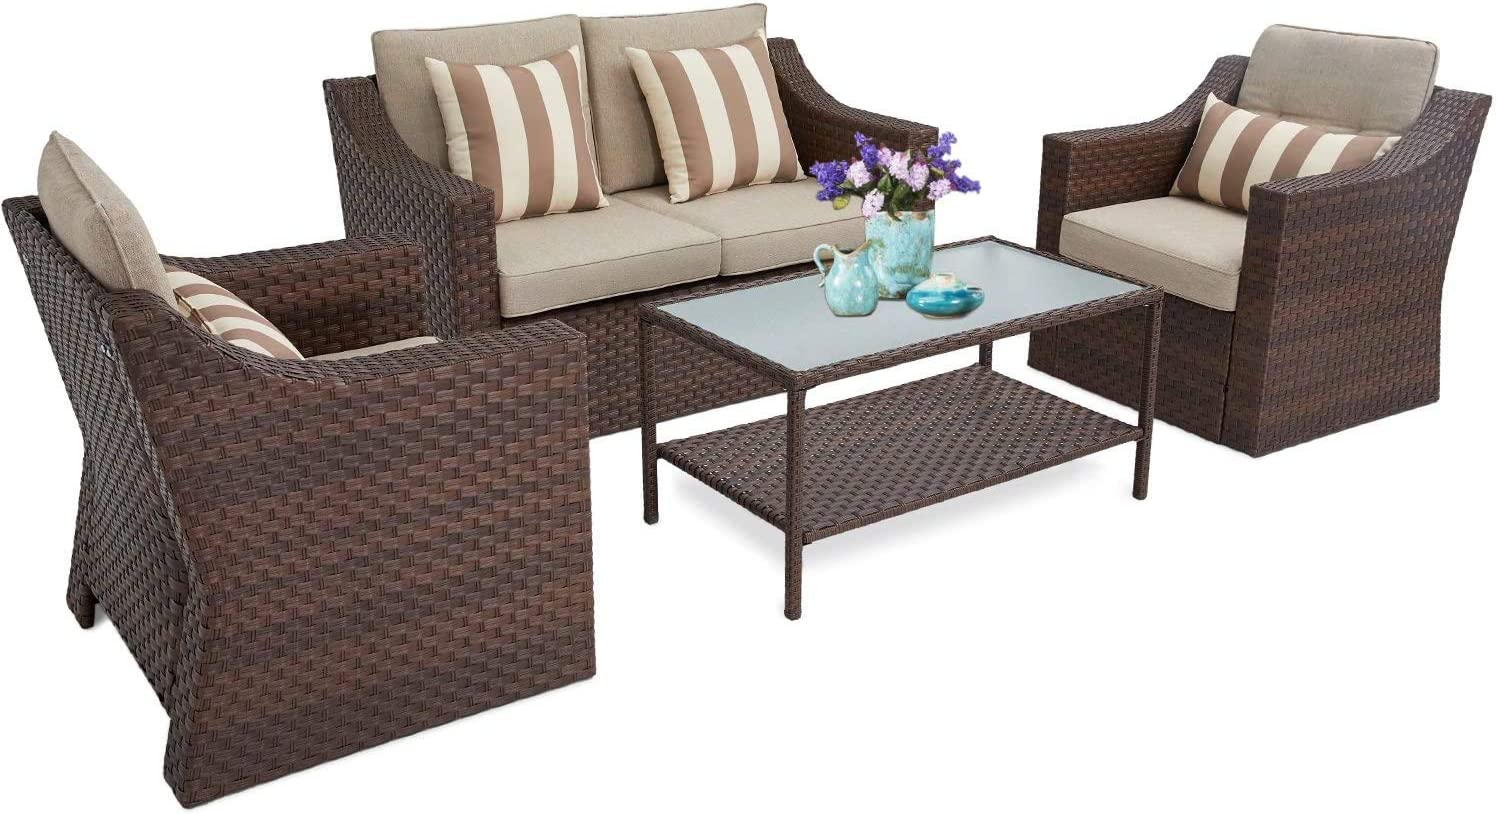 Incbruce 4Pcs Outdoor Patio Sofa Set PE Rattan Wicker Conversation Set with Sophisticated Glass Coffee Table and Soft Cushions (Brown)